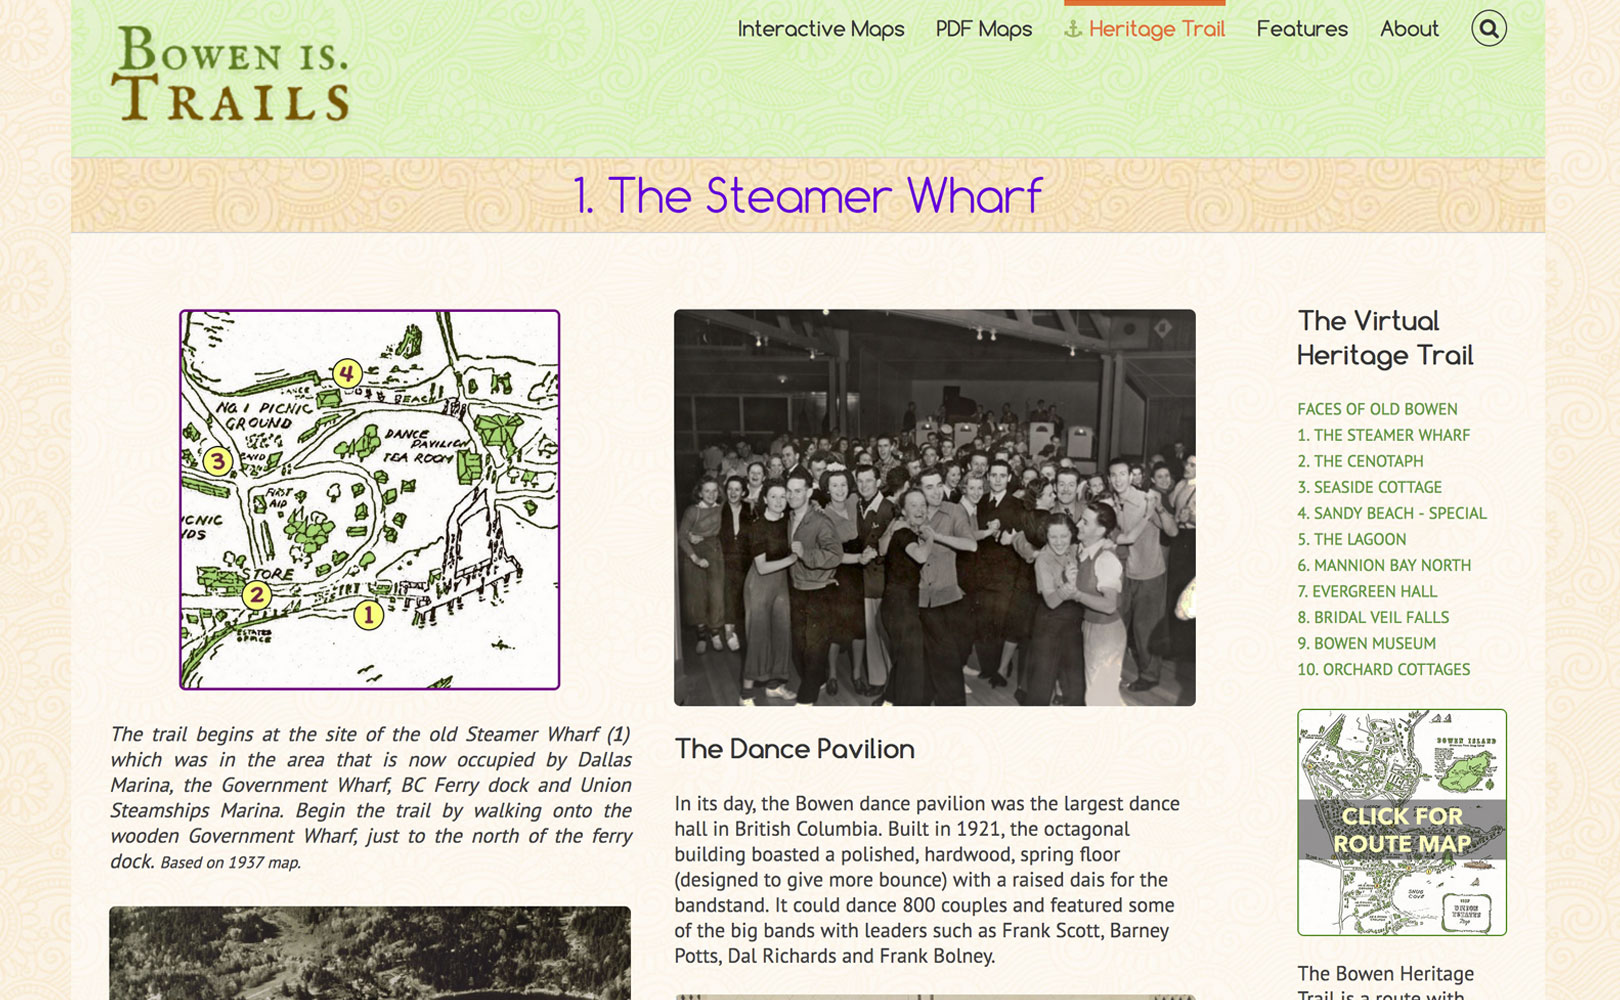 Page one of the heritage trail websites, about the Steamer Wharf on old Bowen Island. A photo of people in the 1920s in the dance hall.